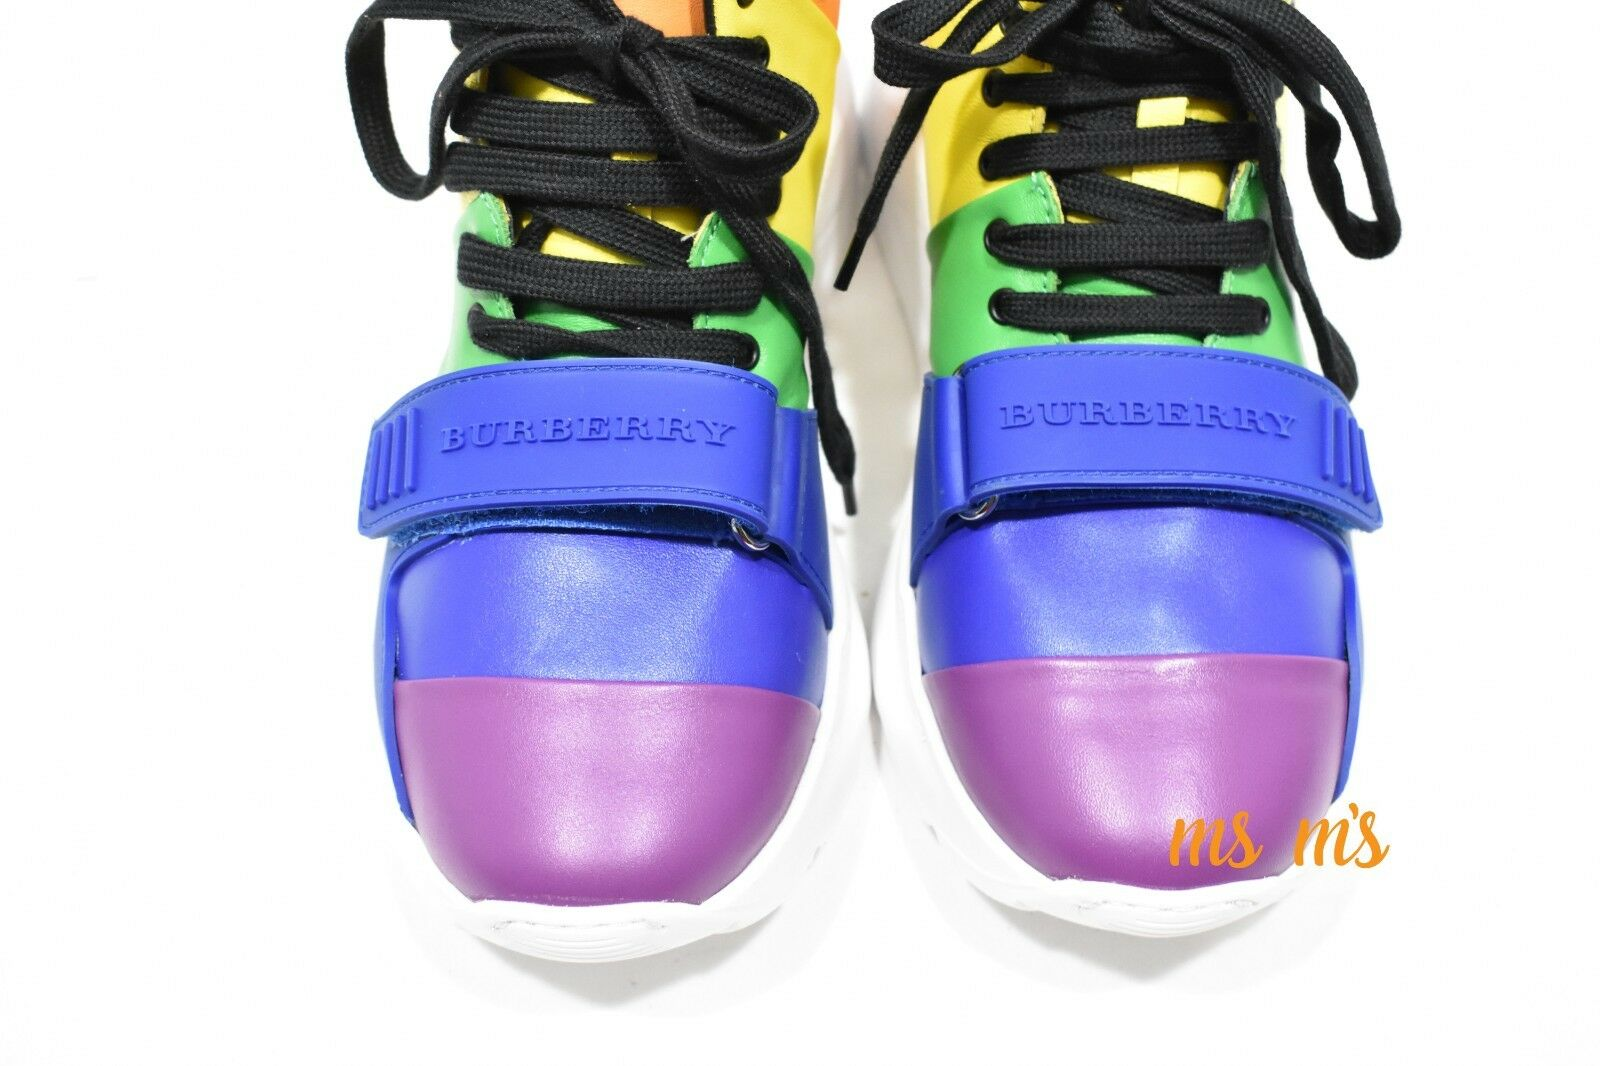 NIB Burberry REGIS RAINBOW HIGH TOP SNEAKERS SMOOTH CALFSKIN CALFSKIN CALFSKIN SZ EU38 US8 WOMENS ea3382